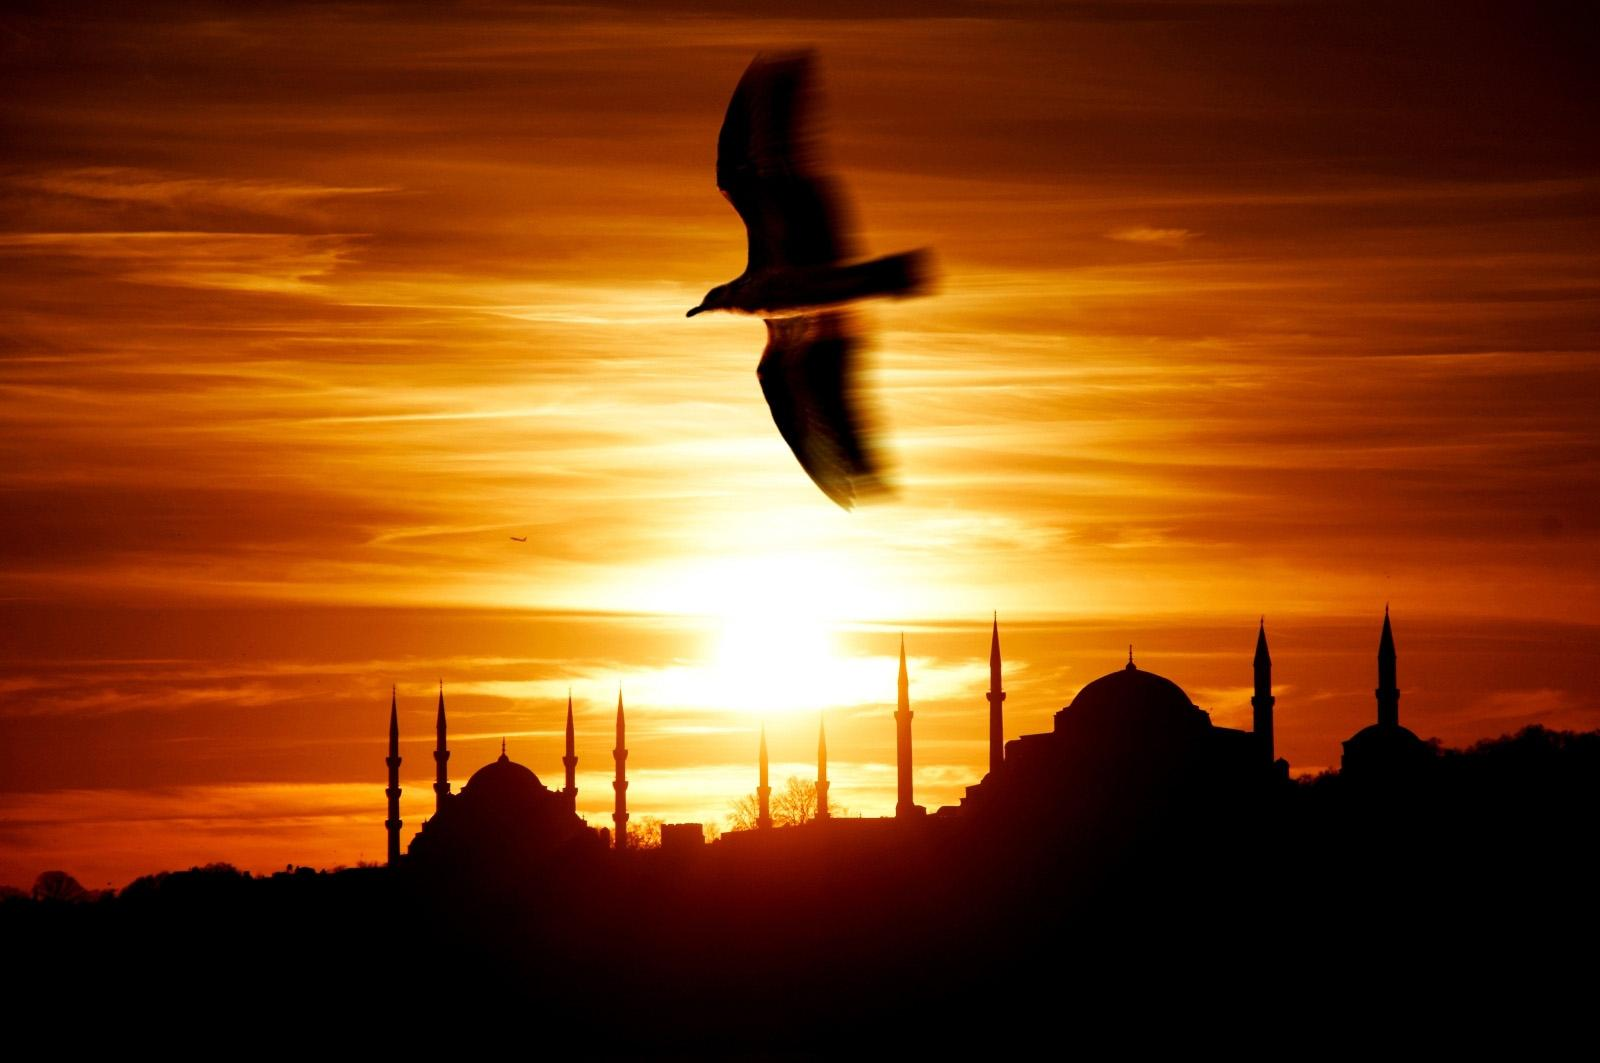 Üsküdar Sunset Sultan Ahmet and Hagia Sophia and the Seagull